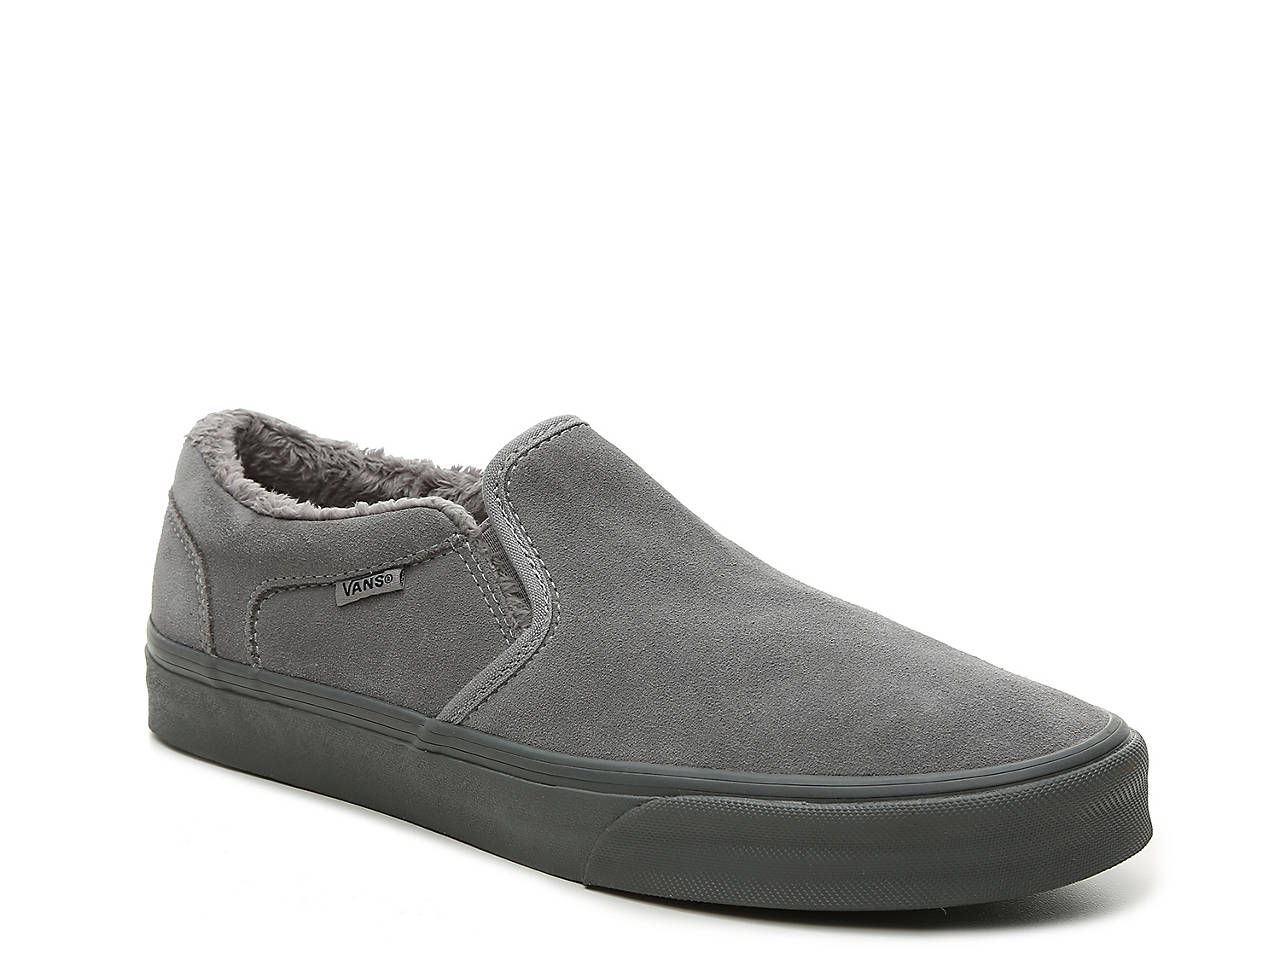 fd75bc8cf7097a Vans Asher MTE Slip-On Sneaker - Men s Men s Shoes